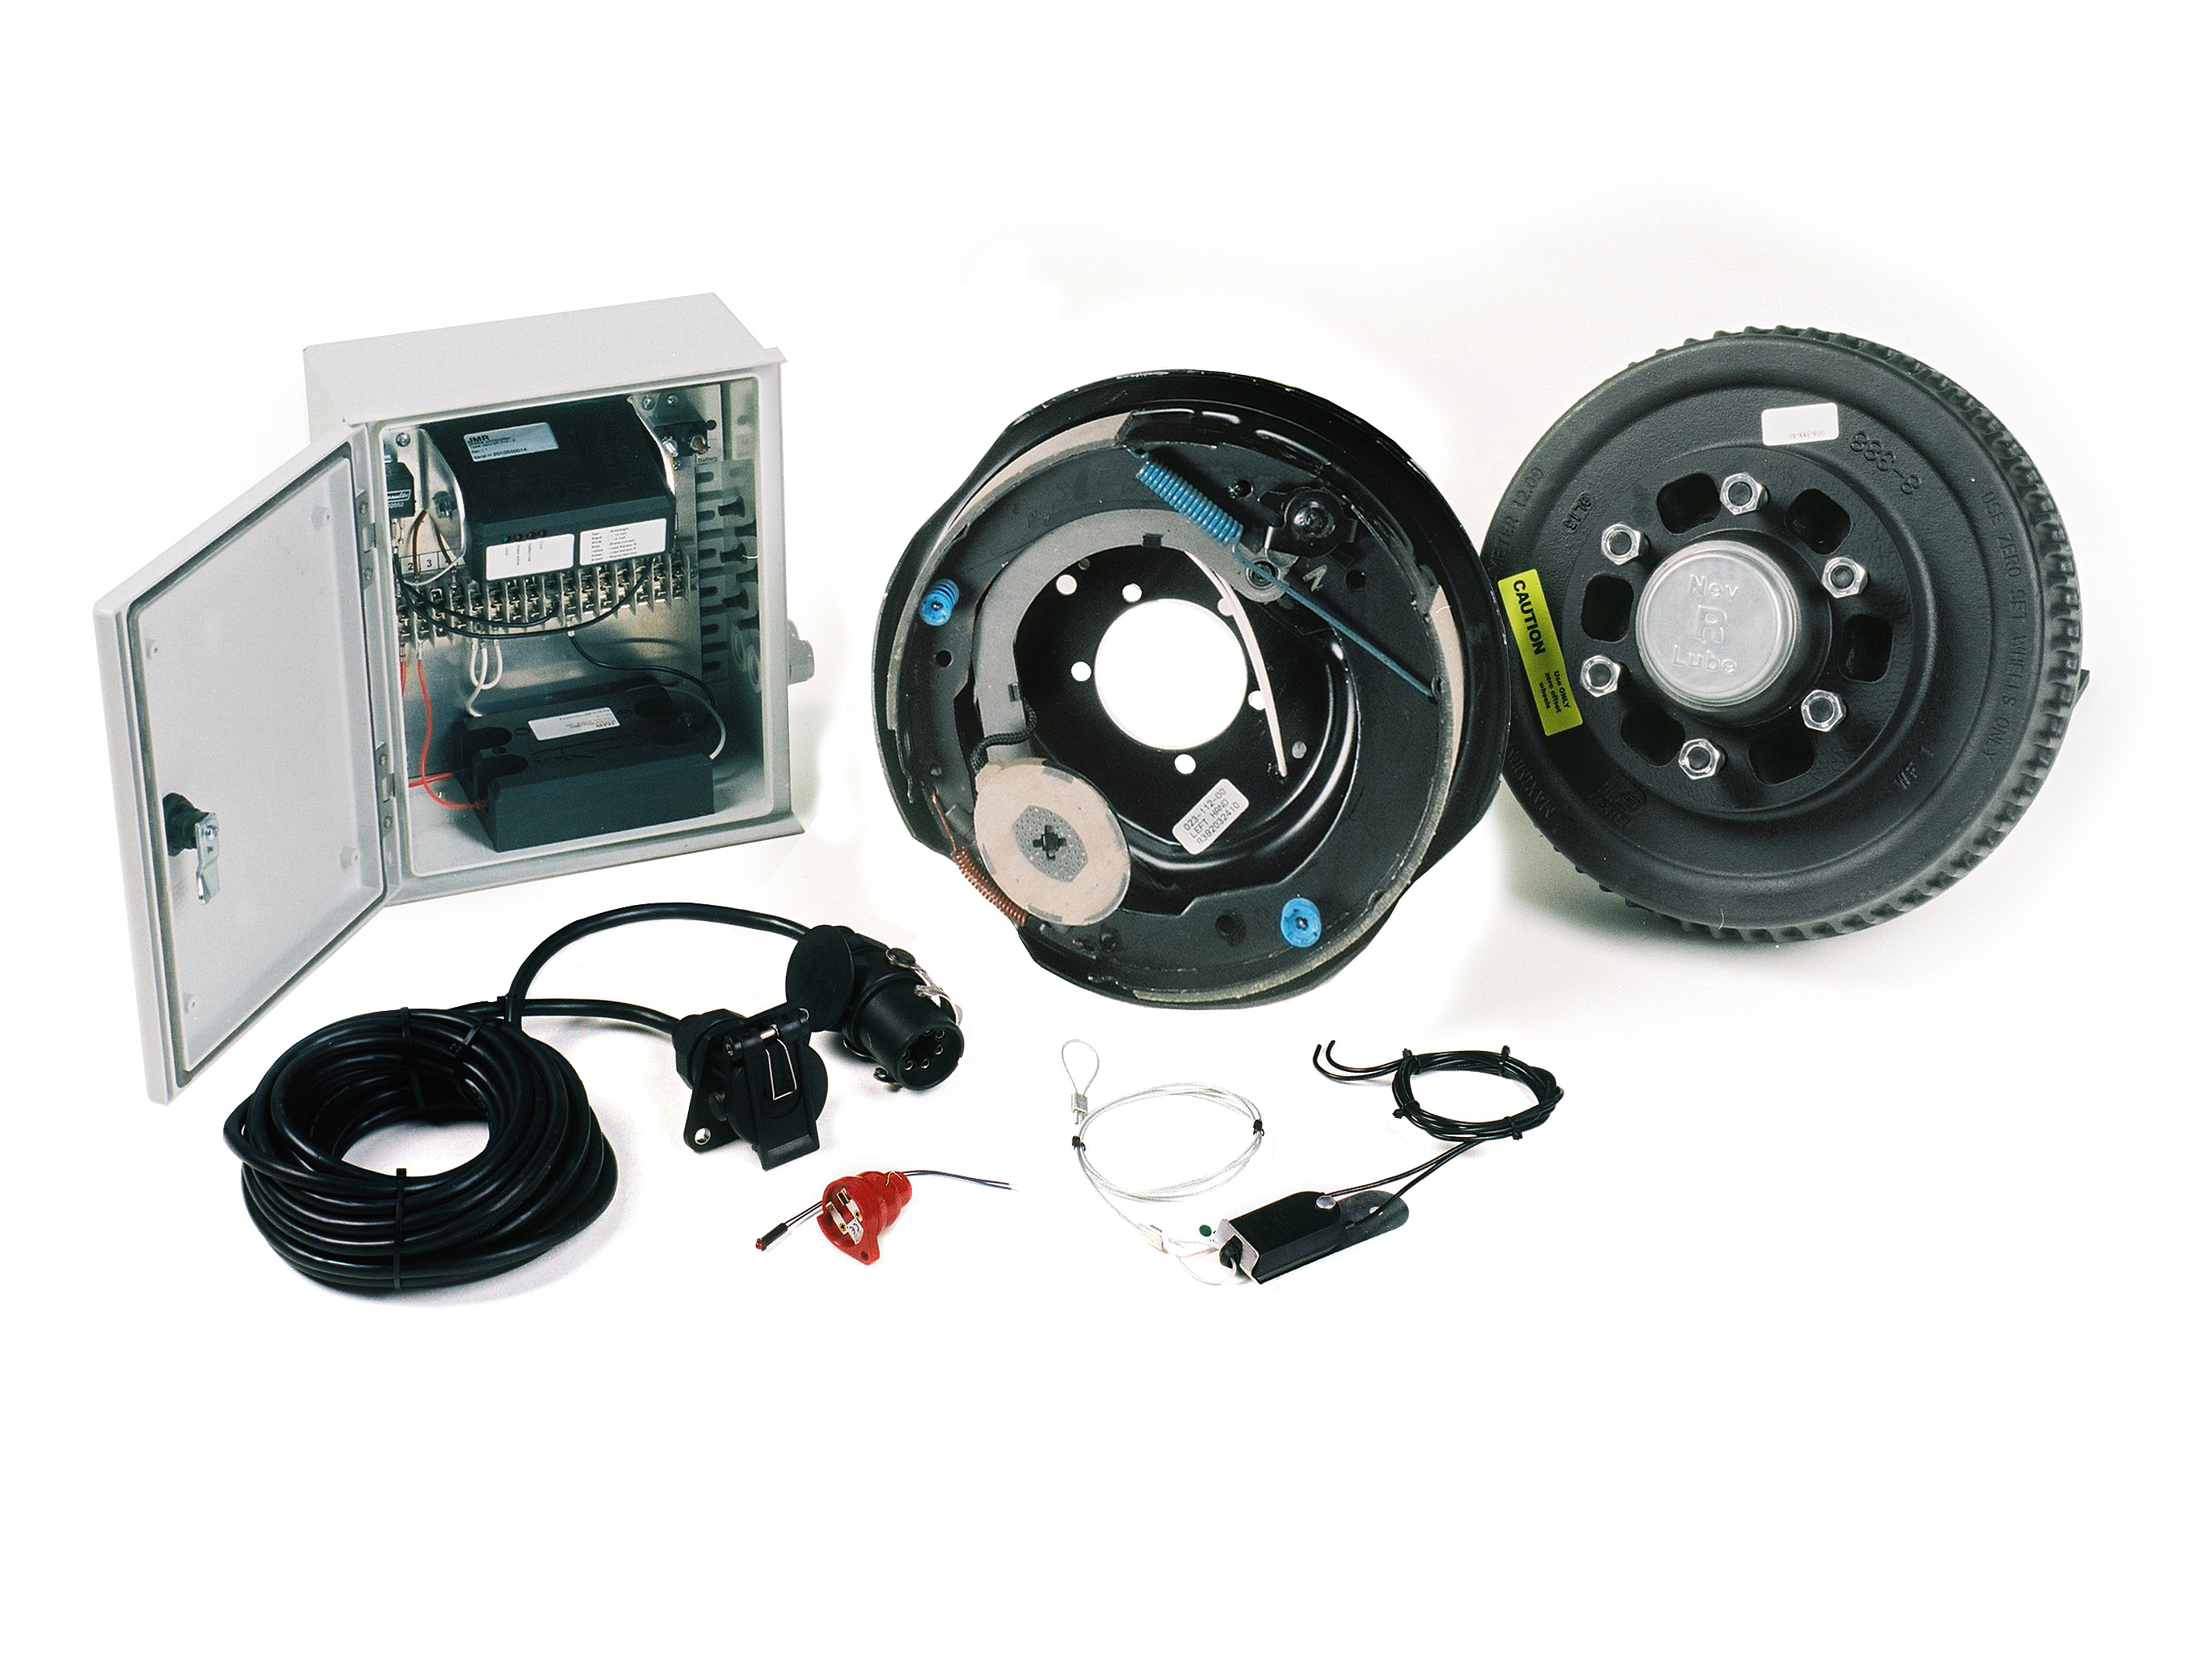 The components of electric brake system with electric brakes consists of a control box with brake controller, power cable, brake drum with back plate and control led